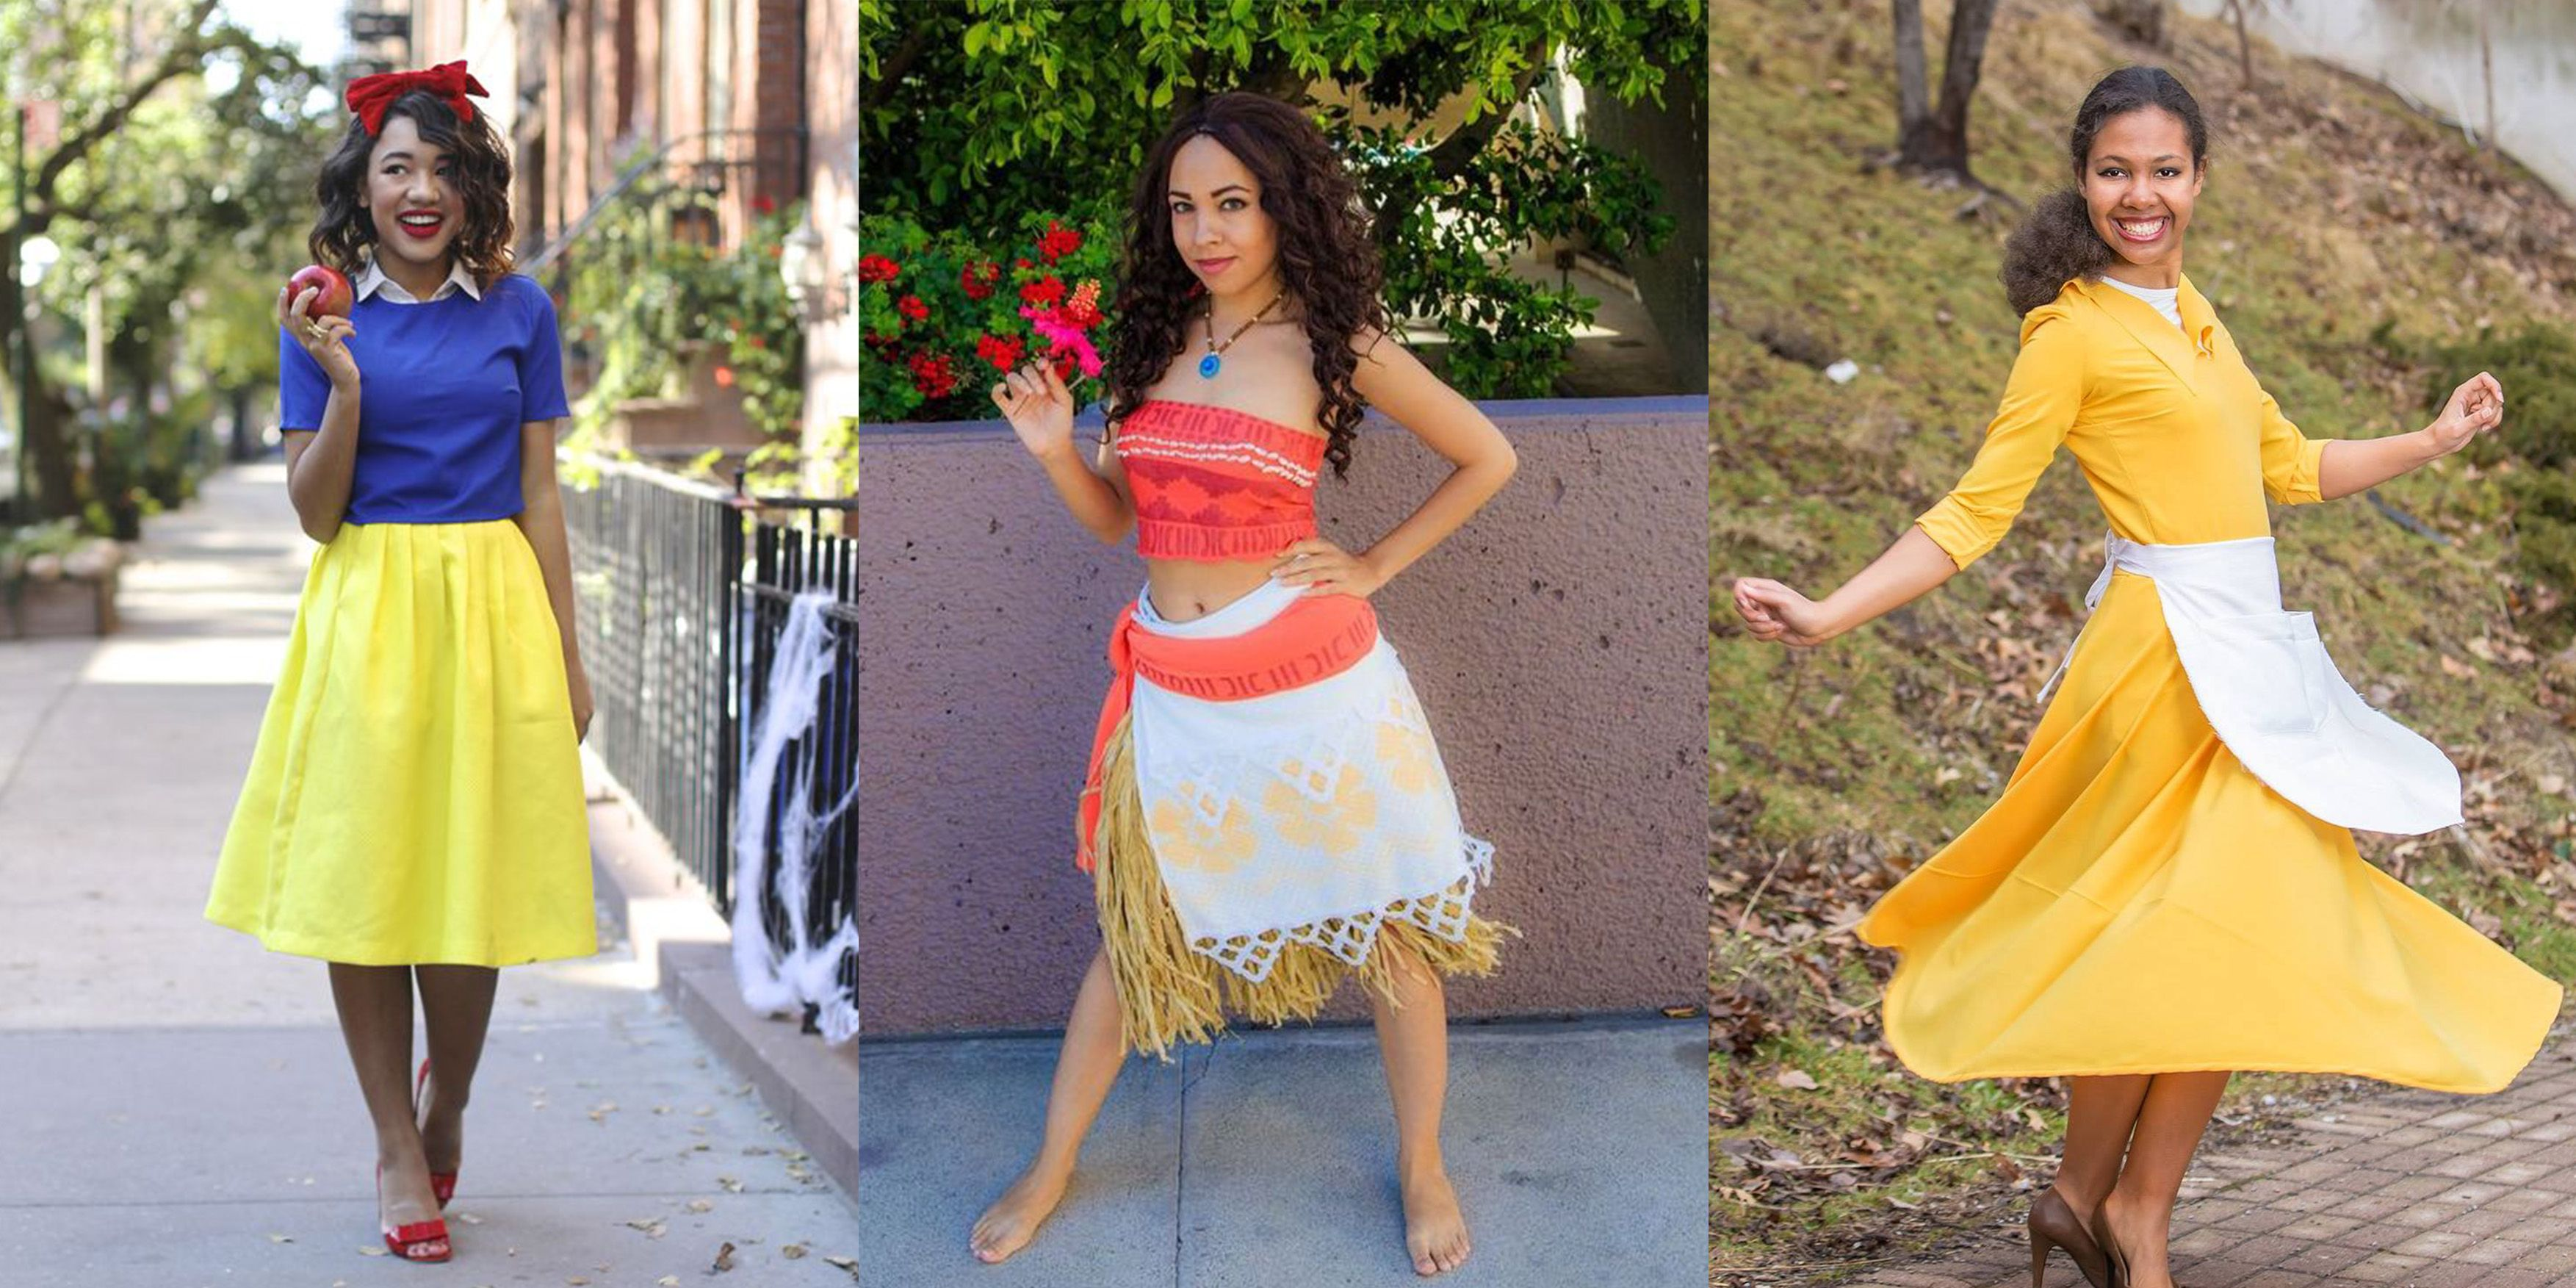 sc 1 th 159 & 13 DIY Disney Princess Halloween Costumes - Princess Costume Ideas